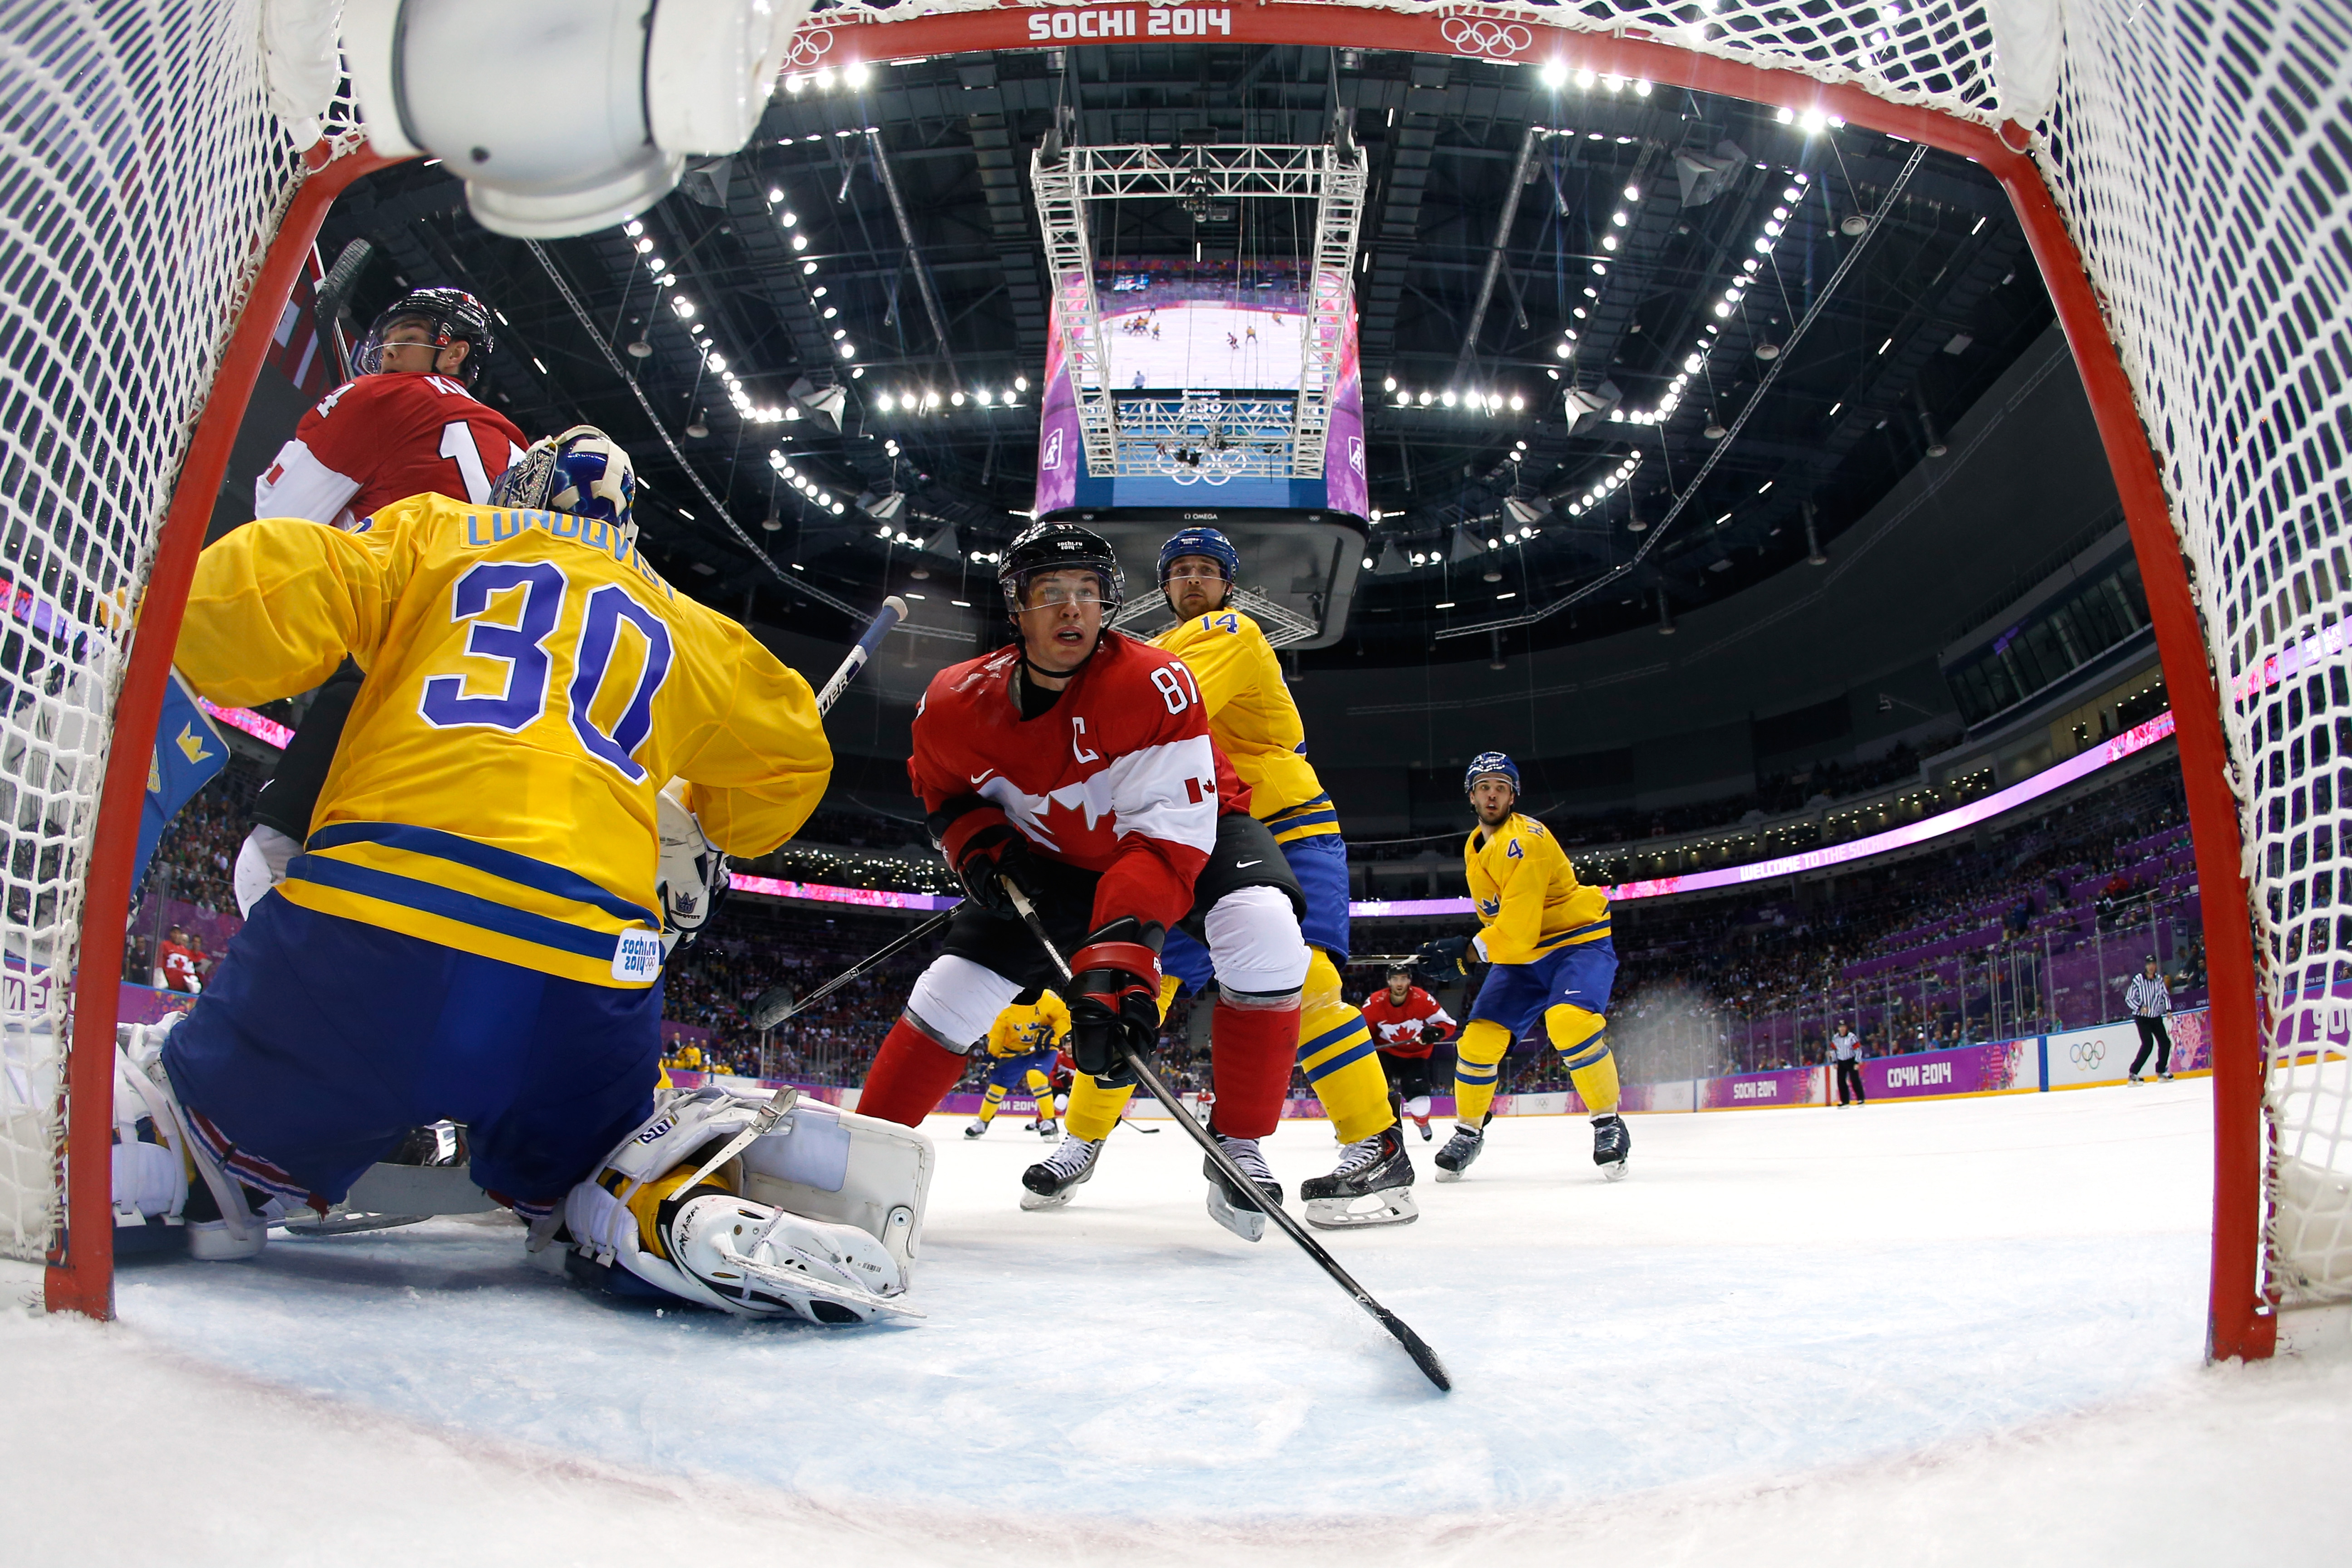 Henrik Lundqvist #30 of Sweden defends his goal as Sidney Crosby #87 of Canada closes in during the Men's Ice Hockey Gold Medal match on Day 16 of the 2014 Sochi Winter Olympics at Bolshoy Ice Dome on February 23, 2014 in Sochi, Russia. (Pool—Getty Images)